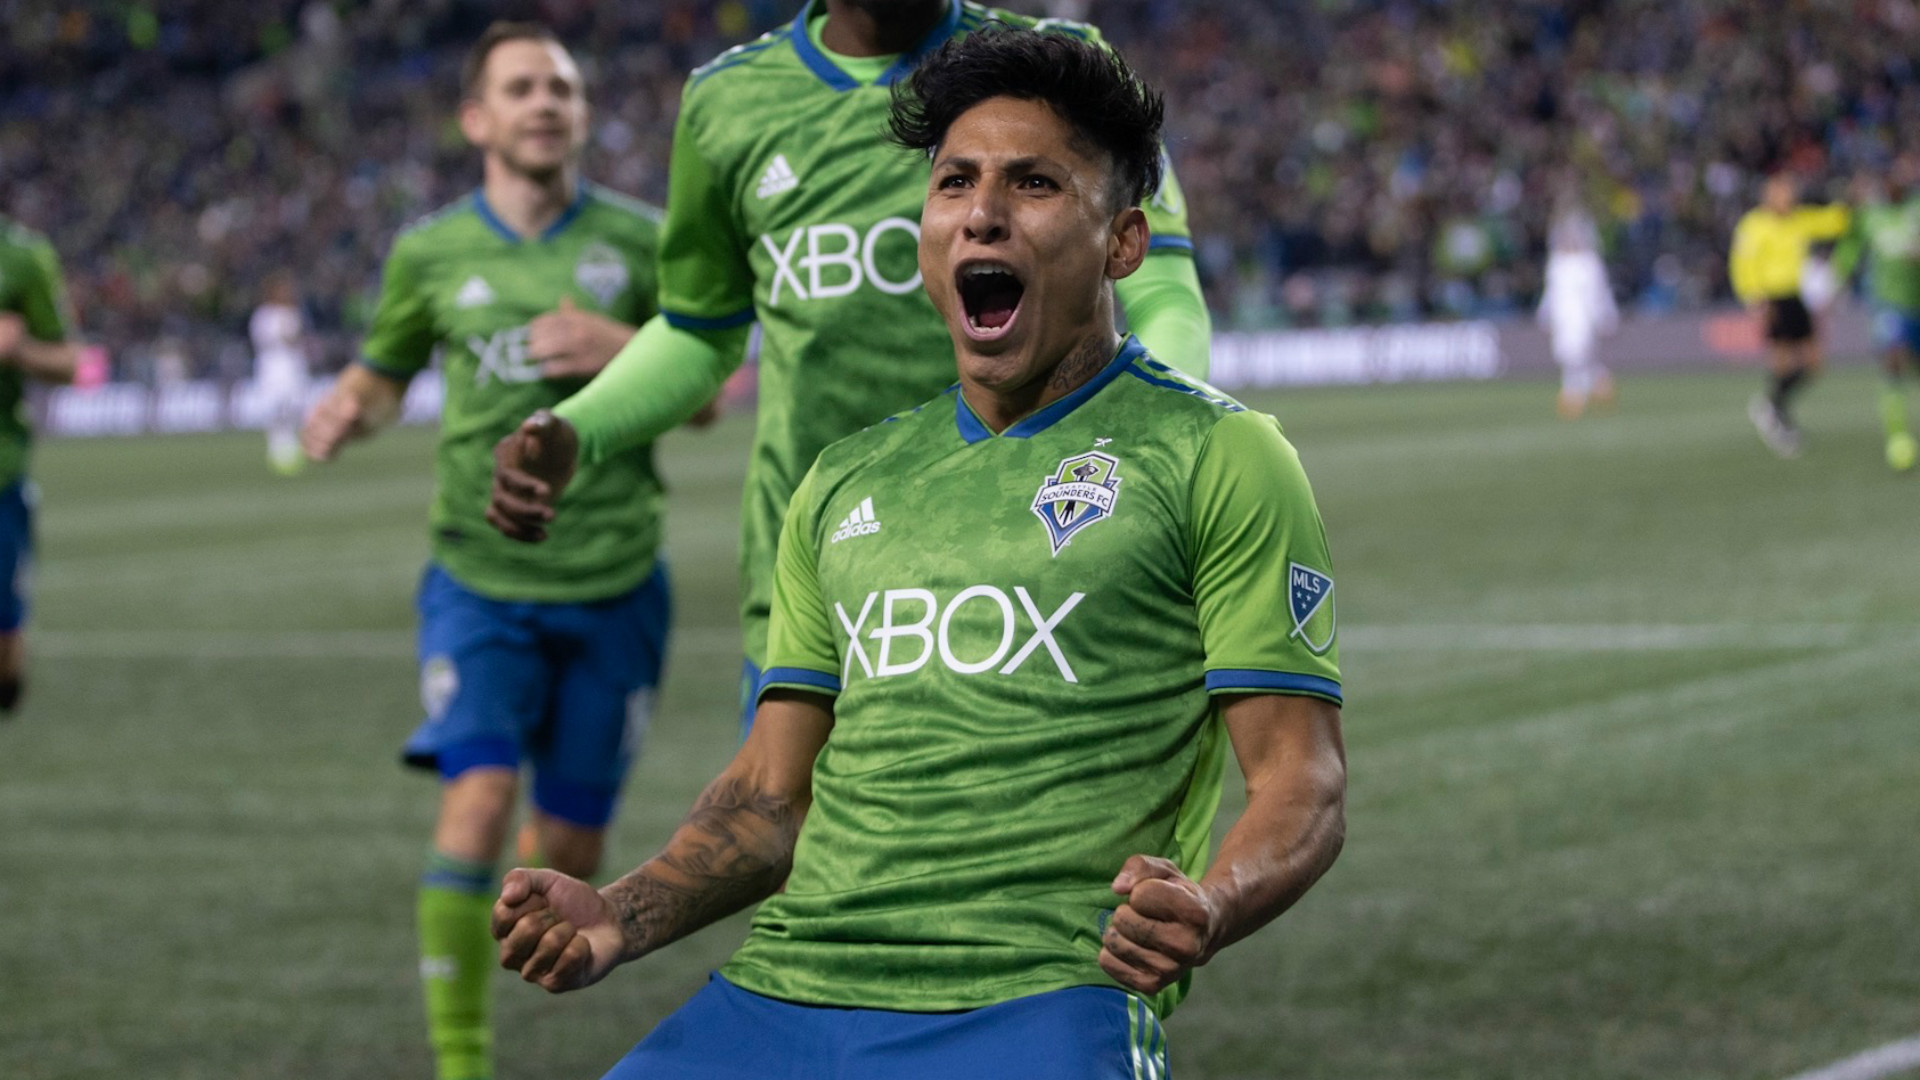 Raul Ruidiaz MLS Seattle Sounders 12042018